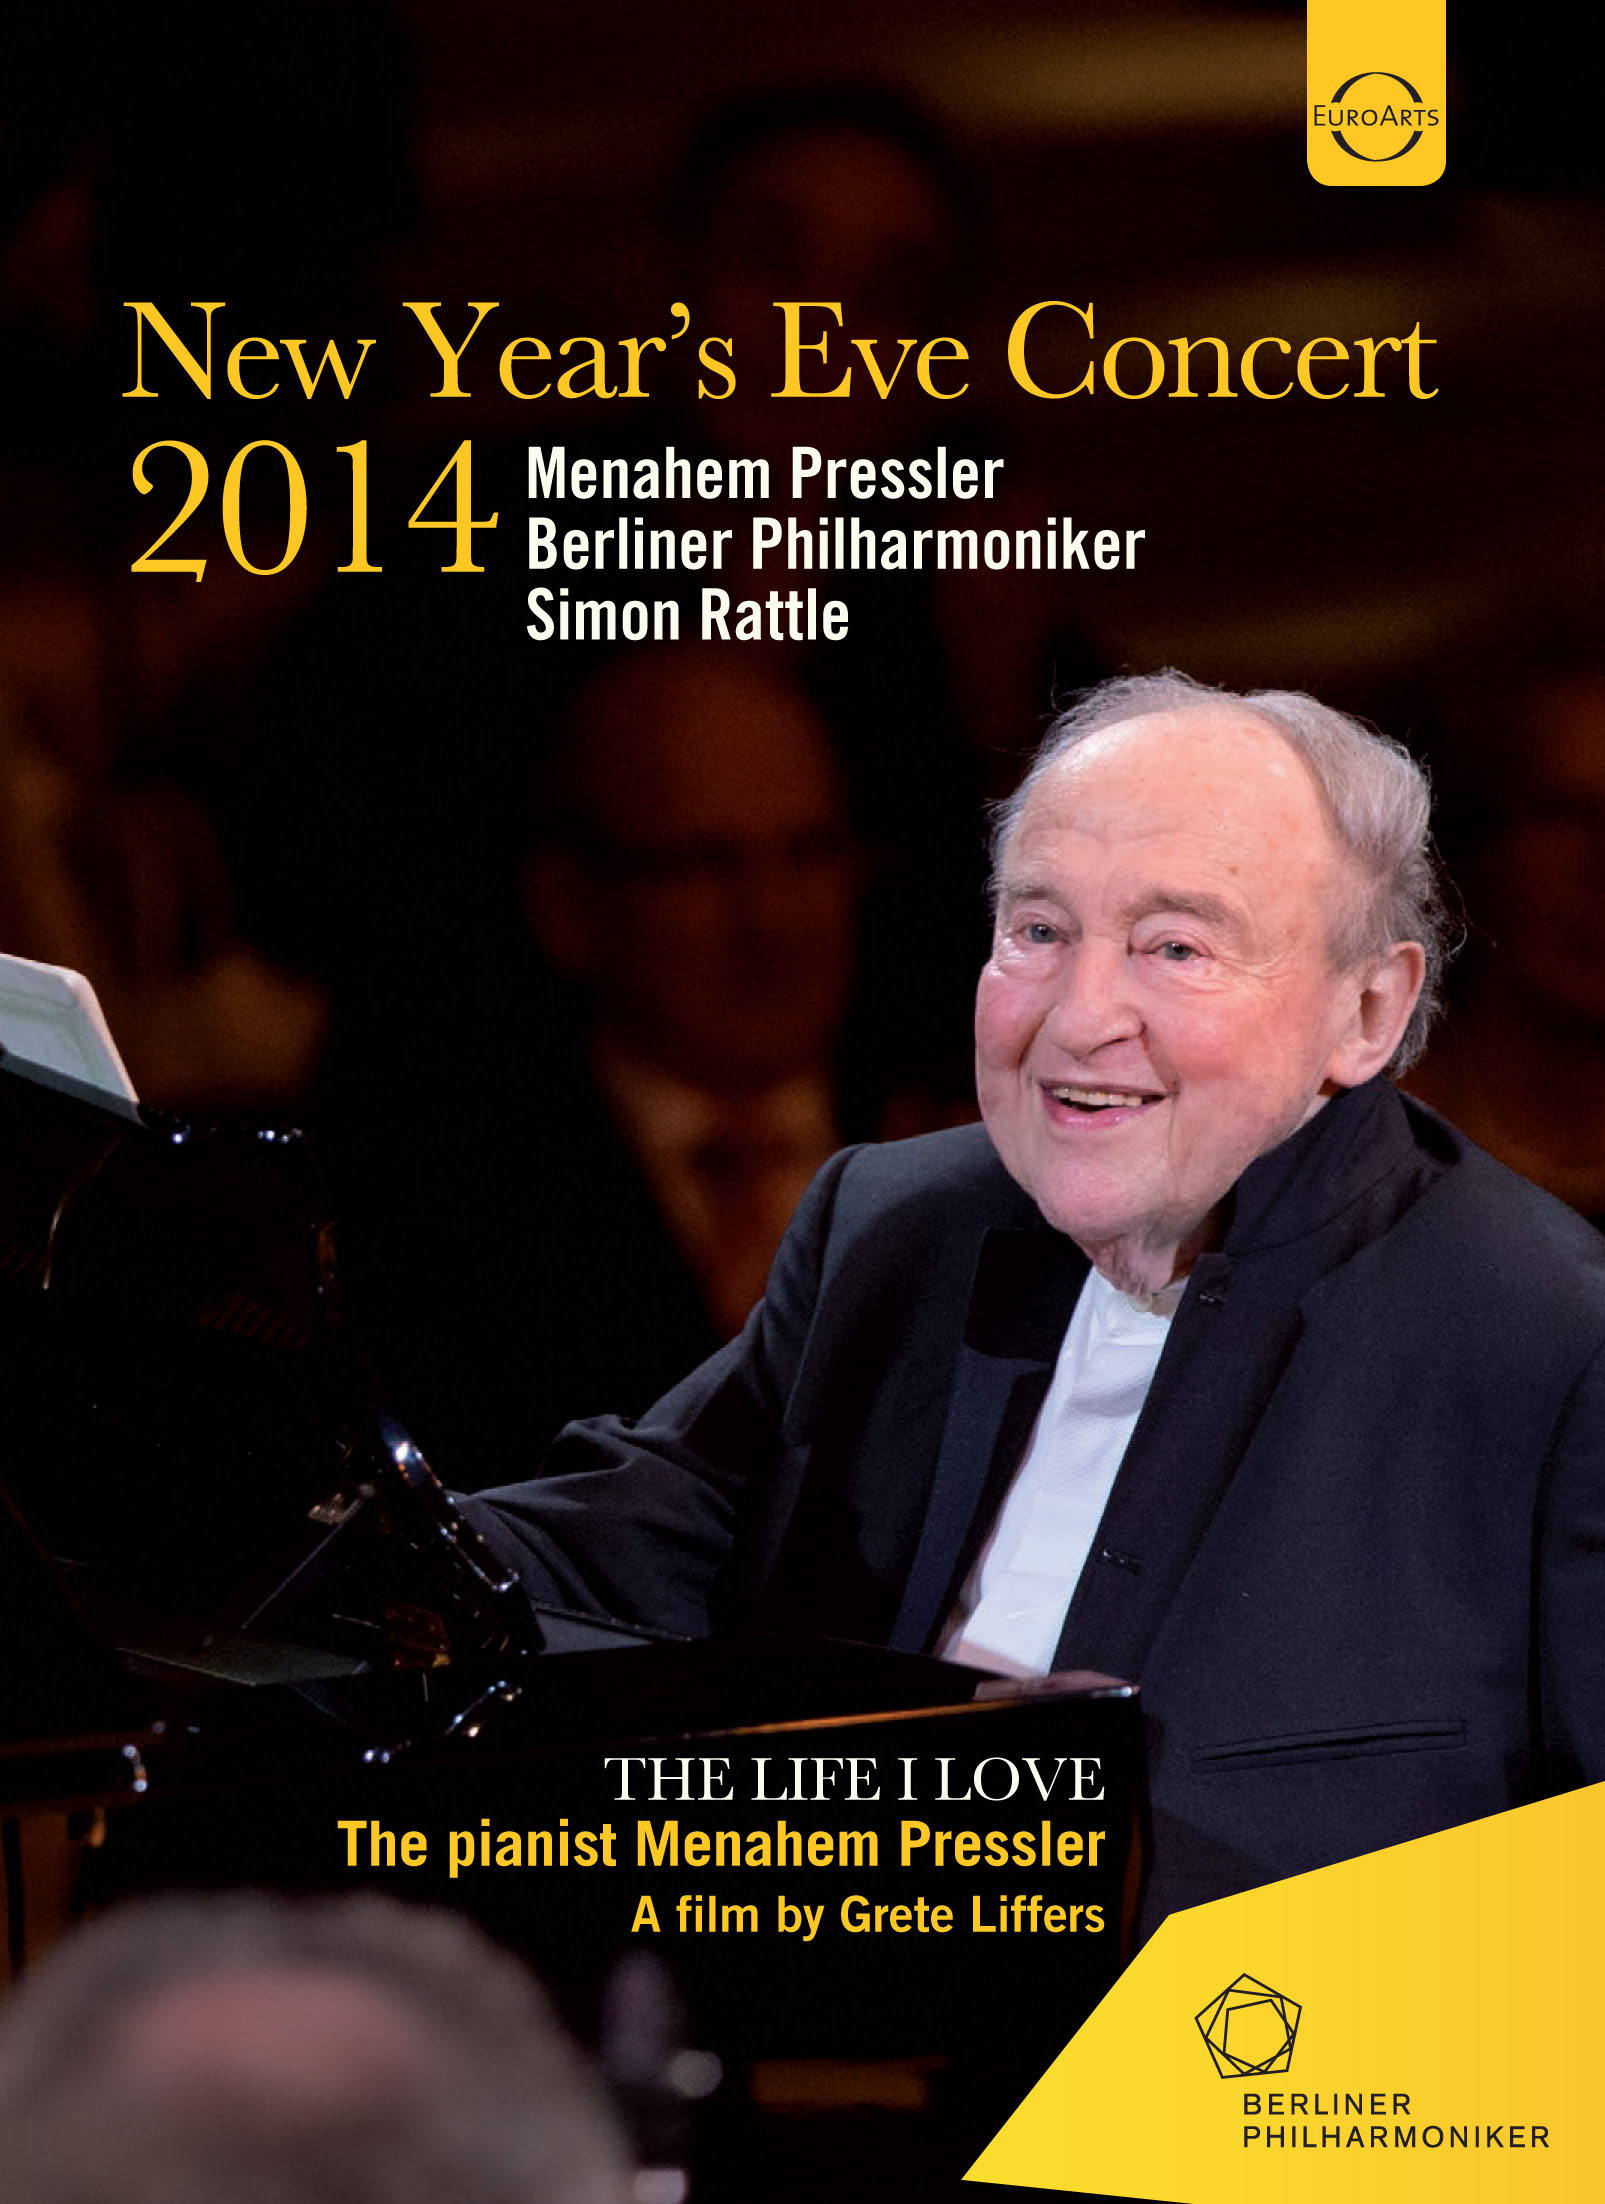 Menahem Pressler/Berliner Philharmoniker/Simon Rattle: New Year's Eve Concert 2014